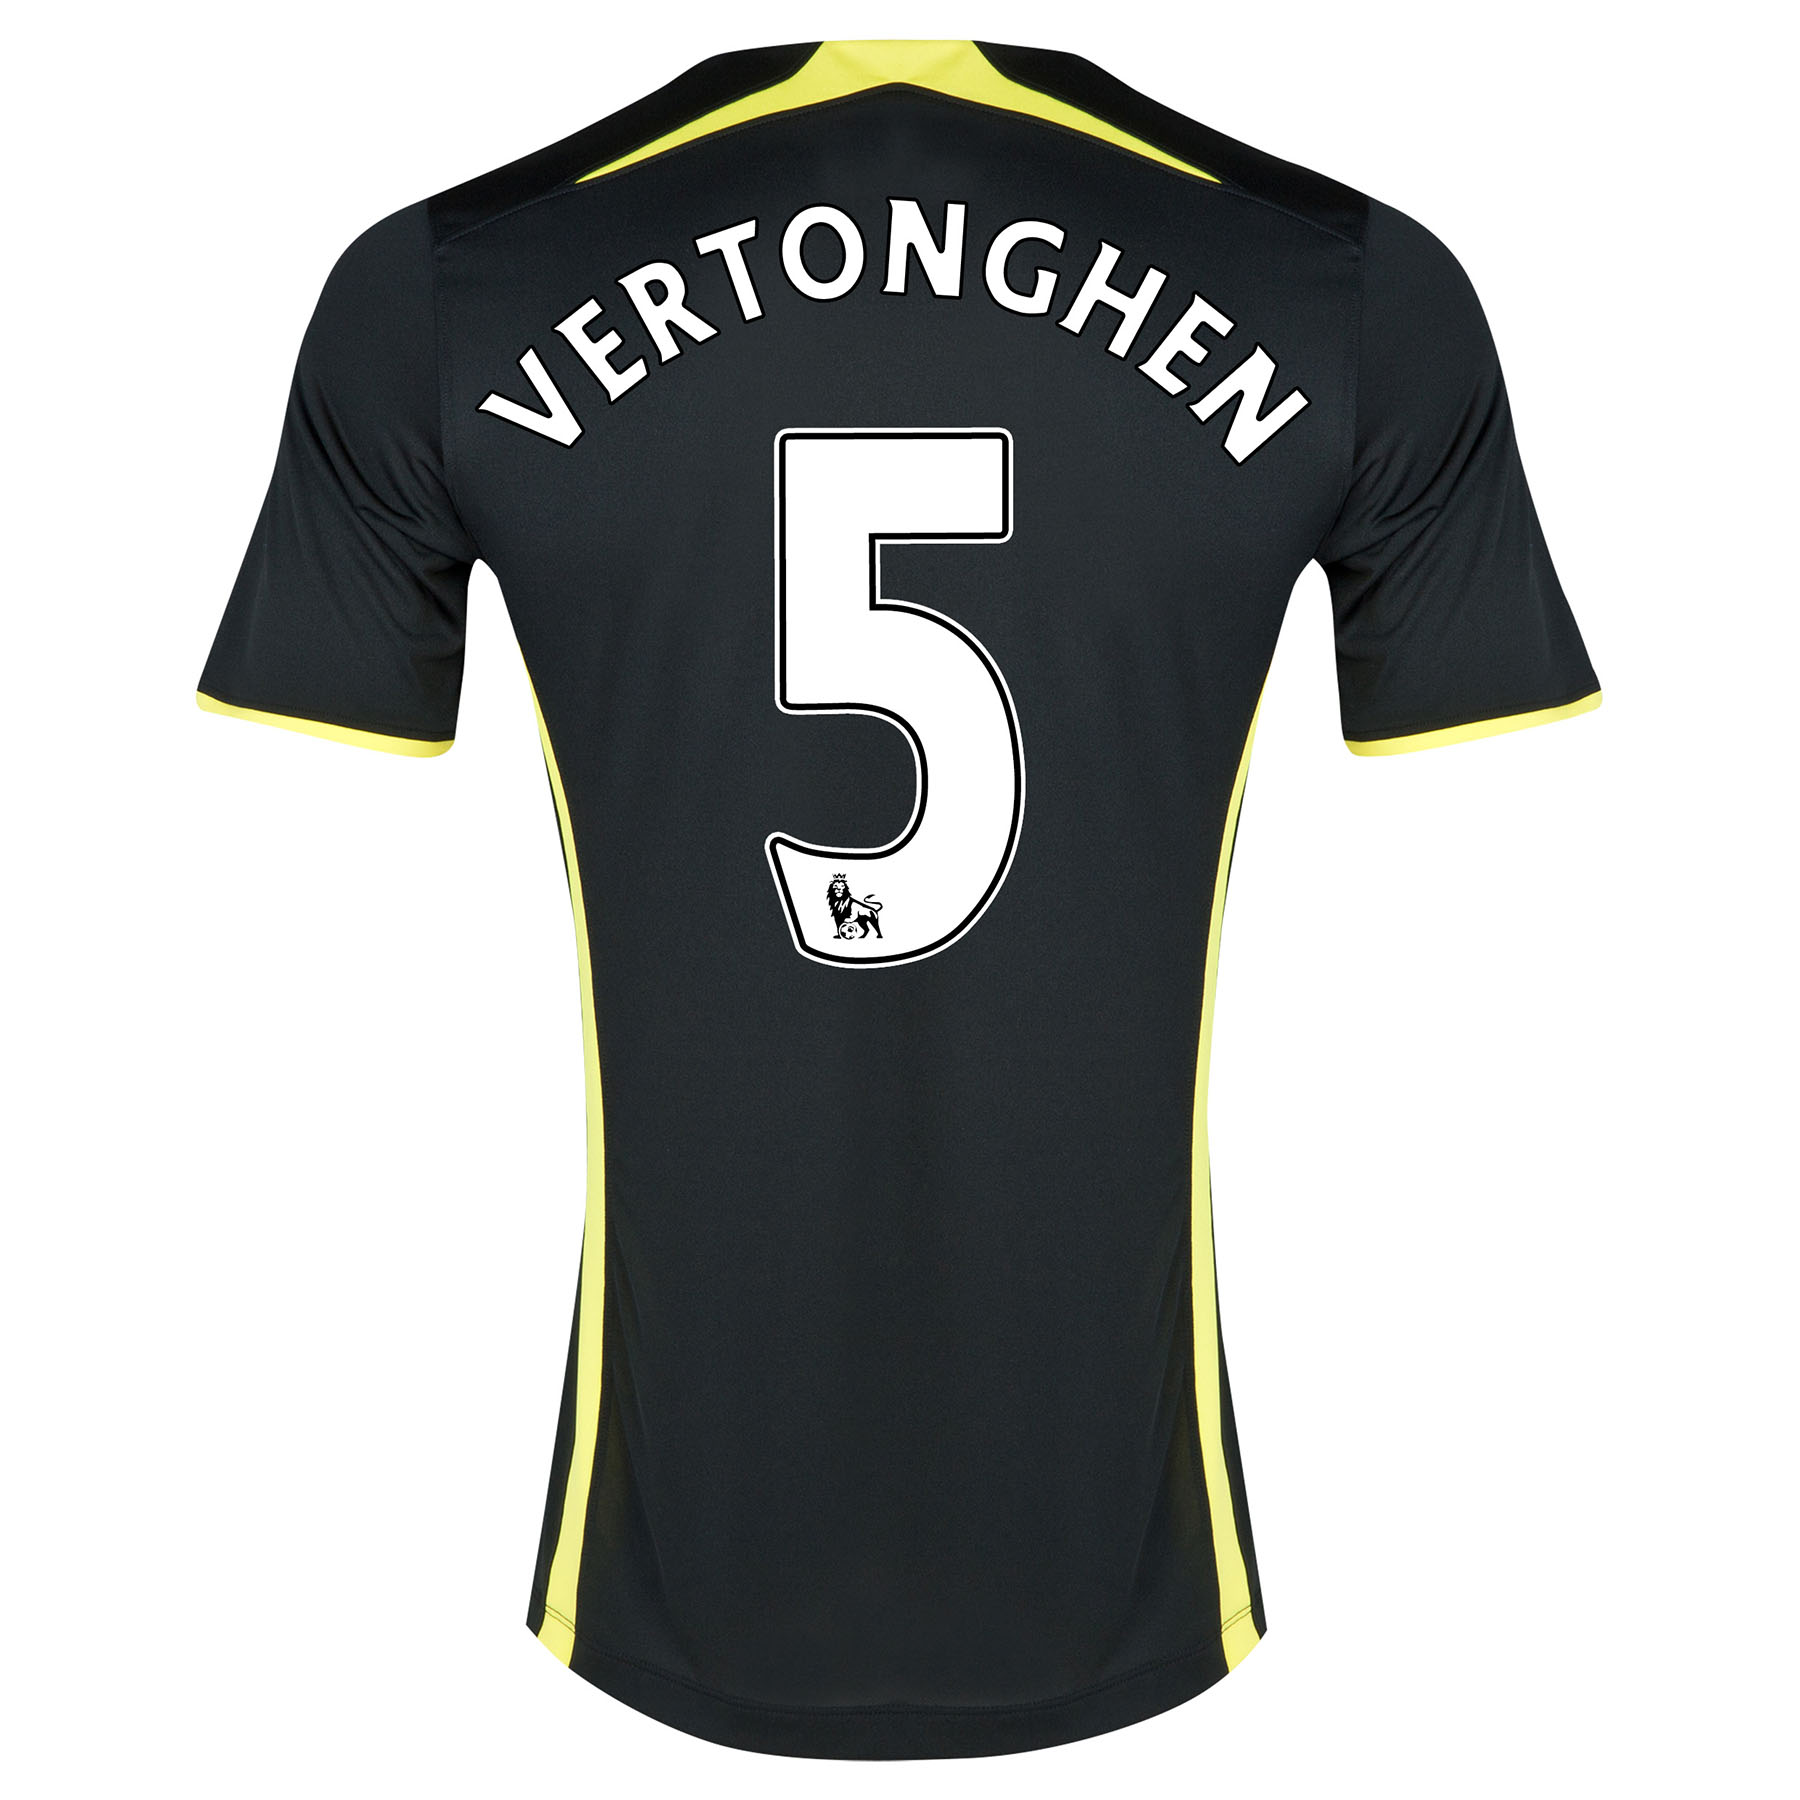 Tottenham Hotspur Away Shirt 2014/15 - Womens with Vertonghen 5 printing